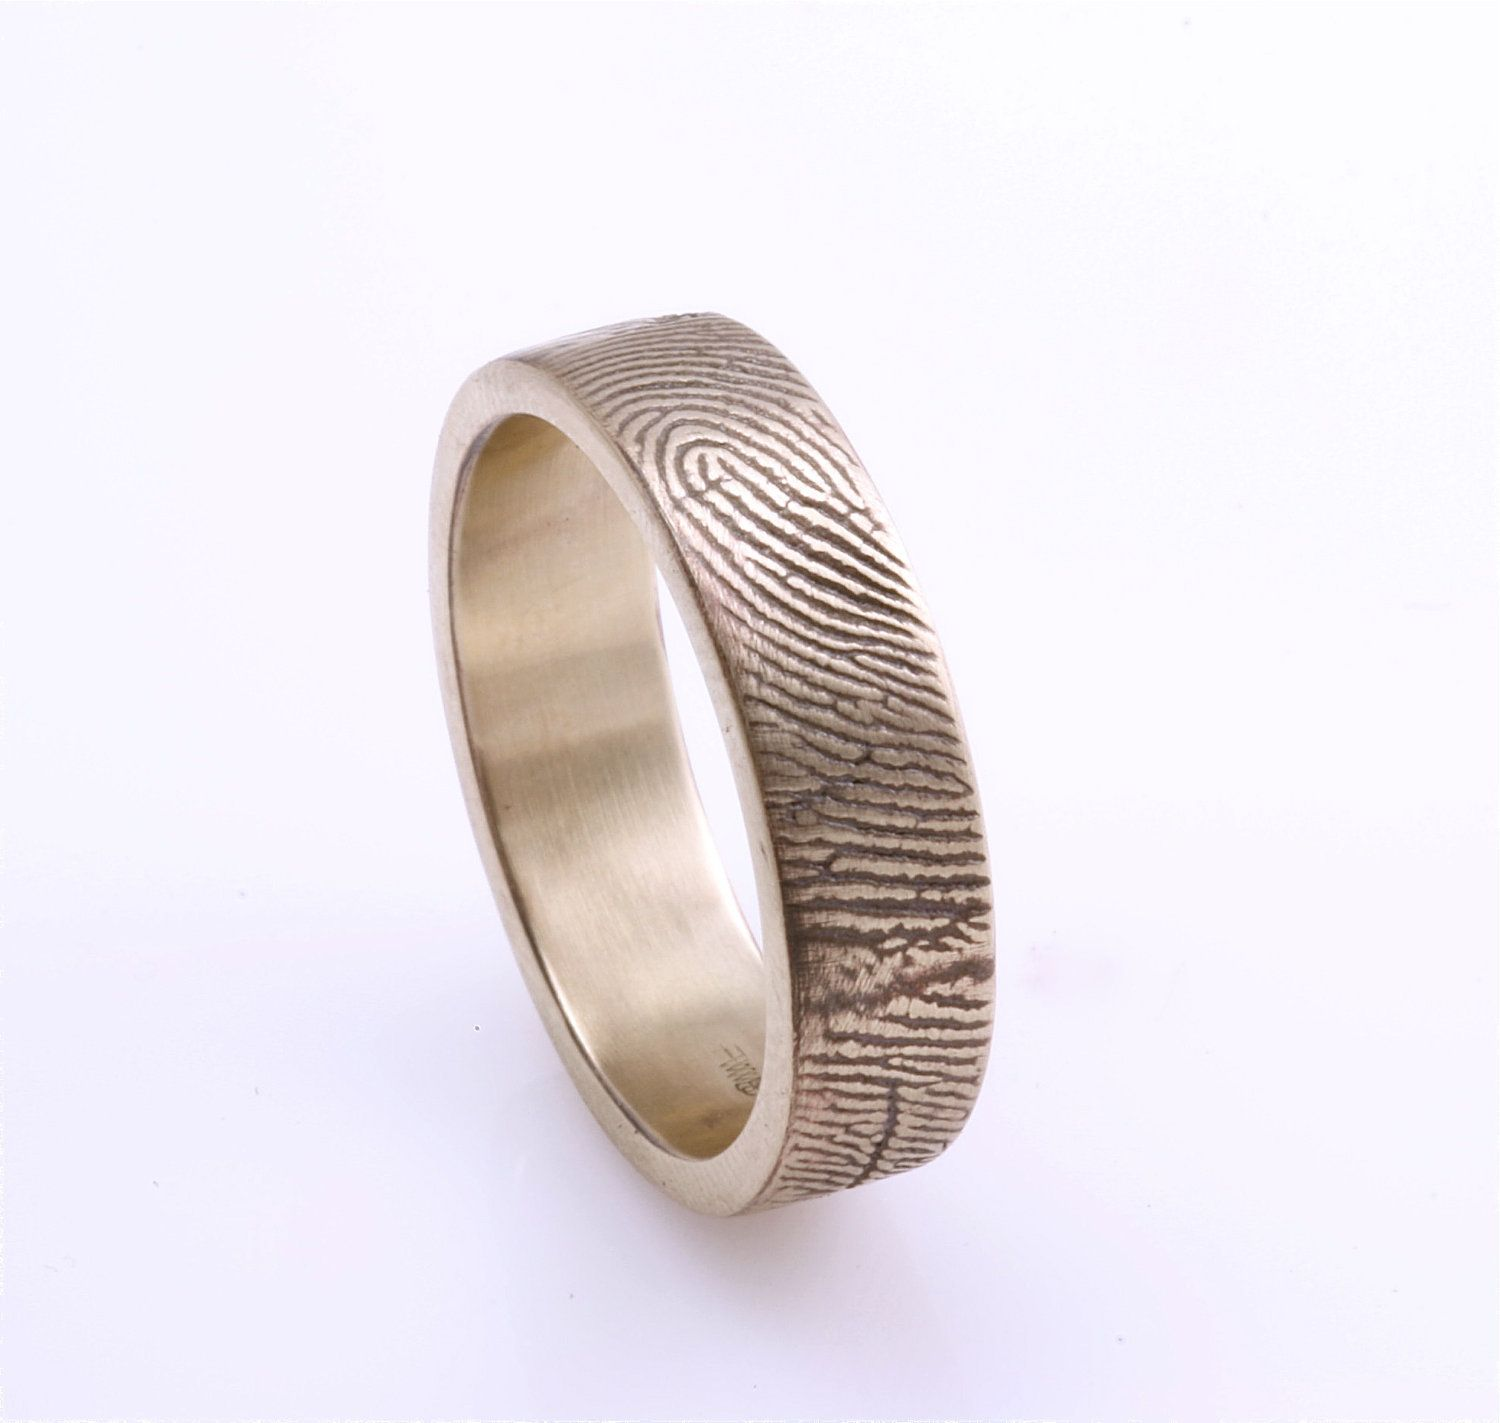 handpicked bands venuelust large image ideas mens custom unique print fingerprint rings ring finger post wedding